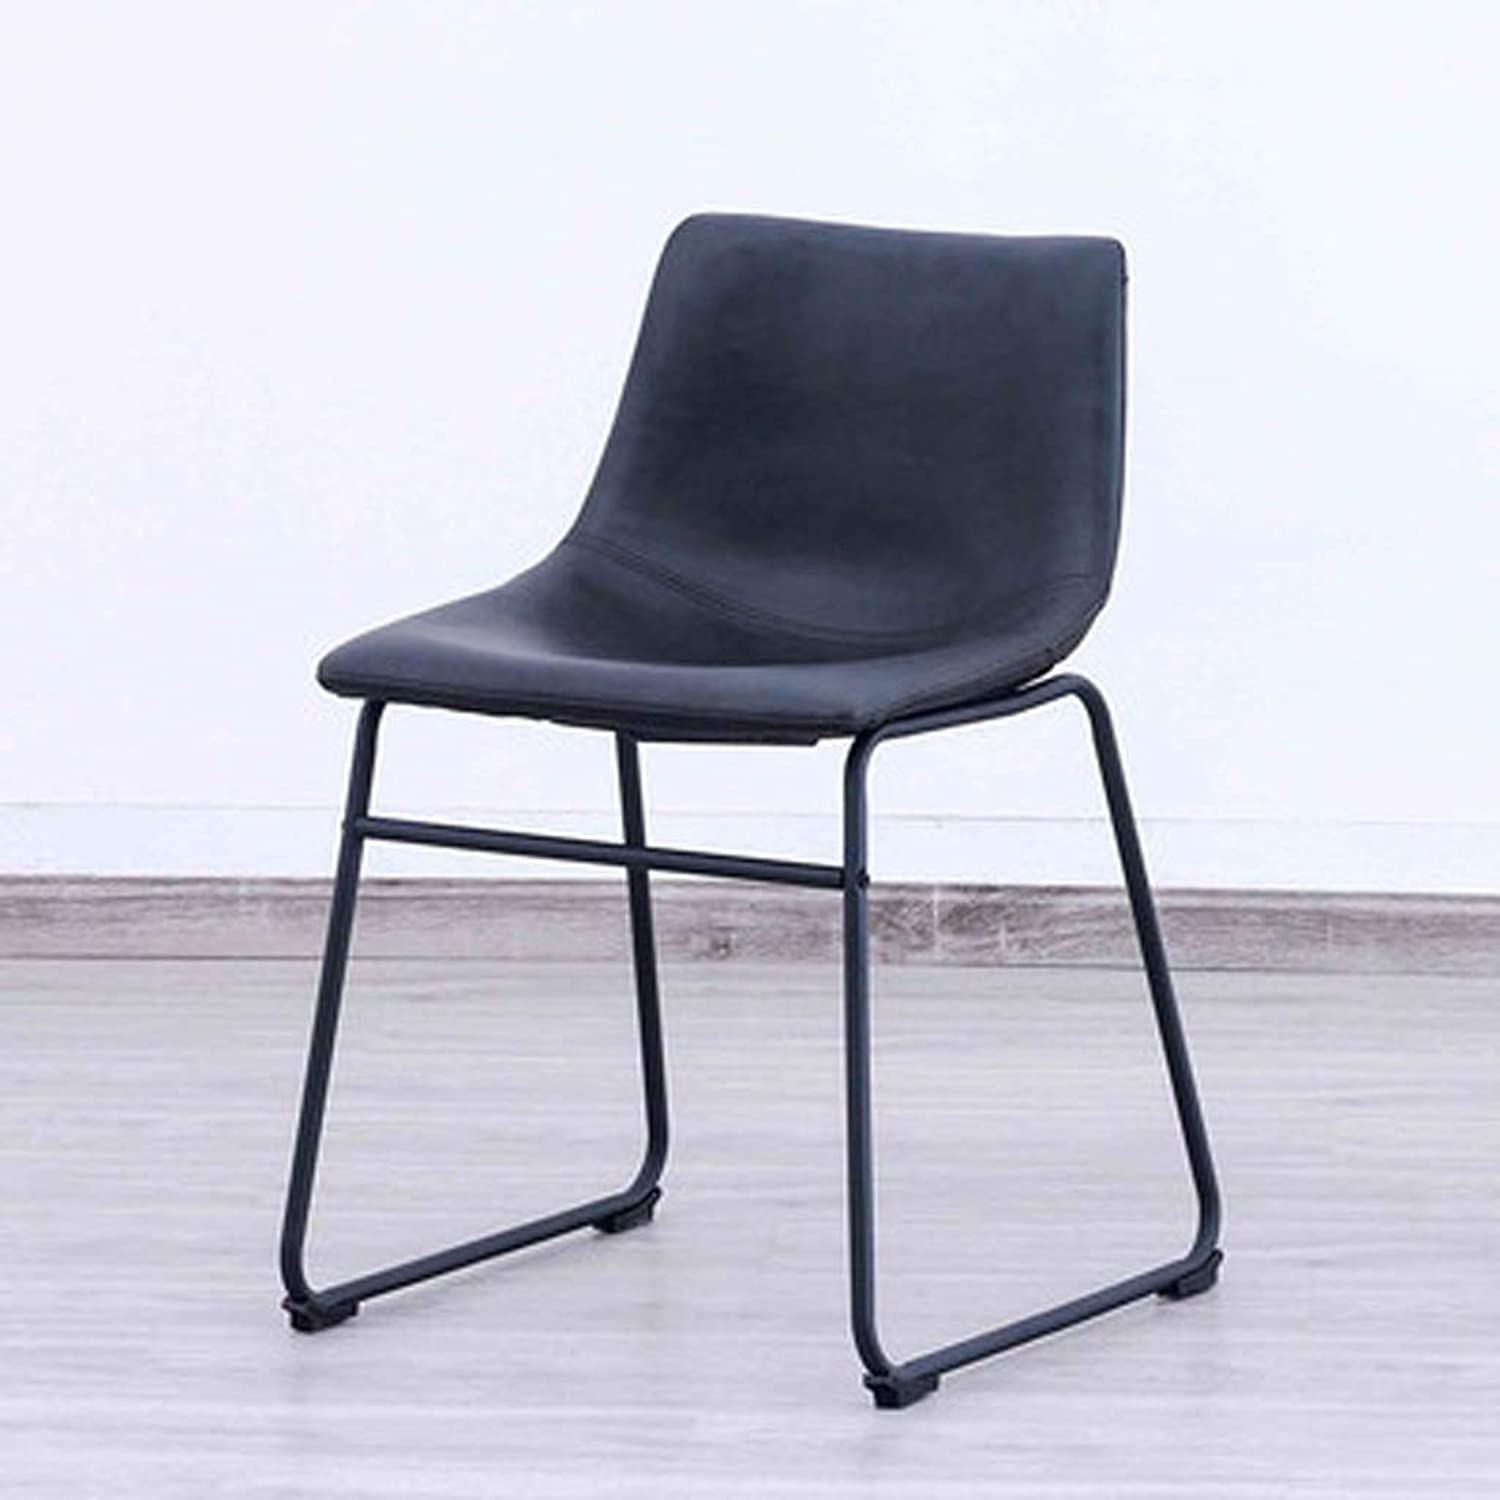 Llsdls Bar Stool, Wrought Iron Home High Stool with Pulley Leather Soft Cushion,SalonChair with Backrest for Kitchen.